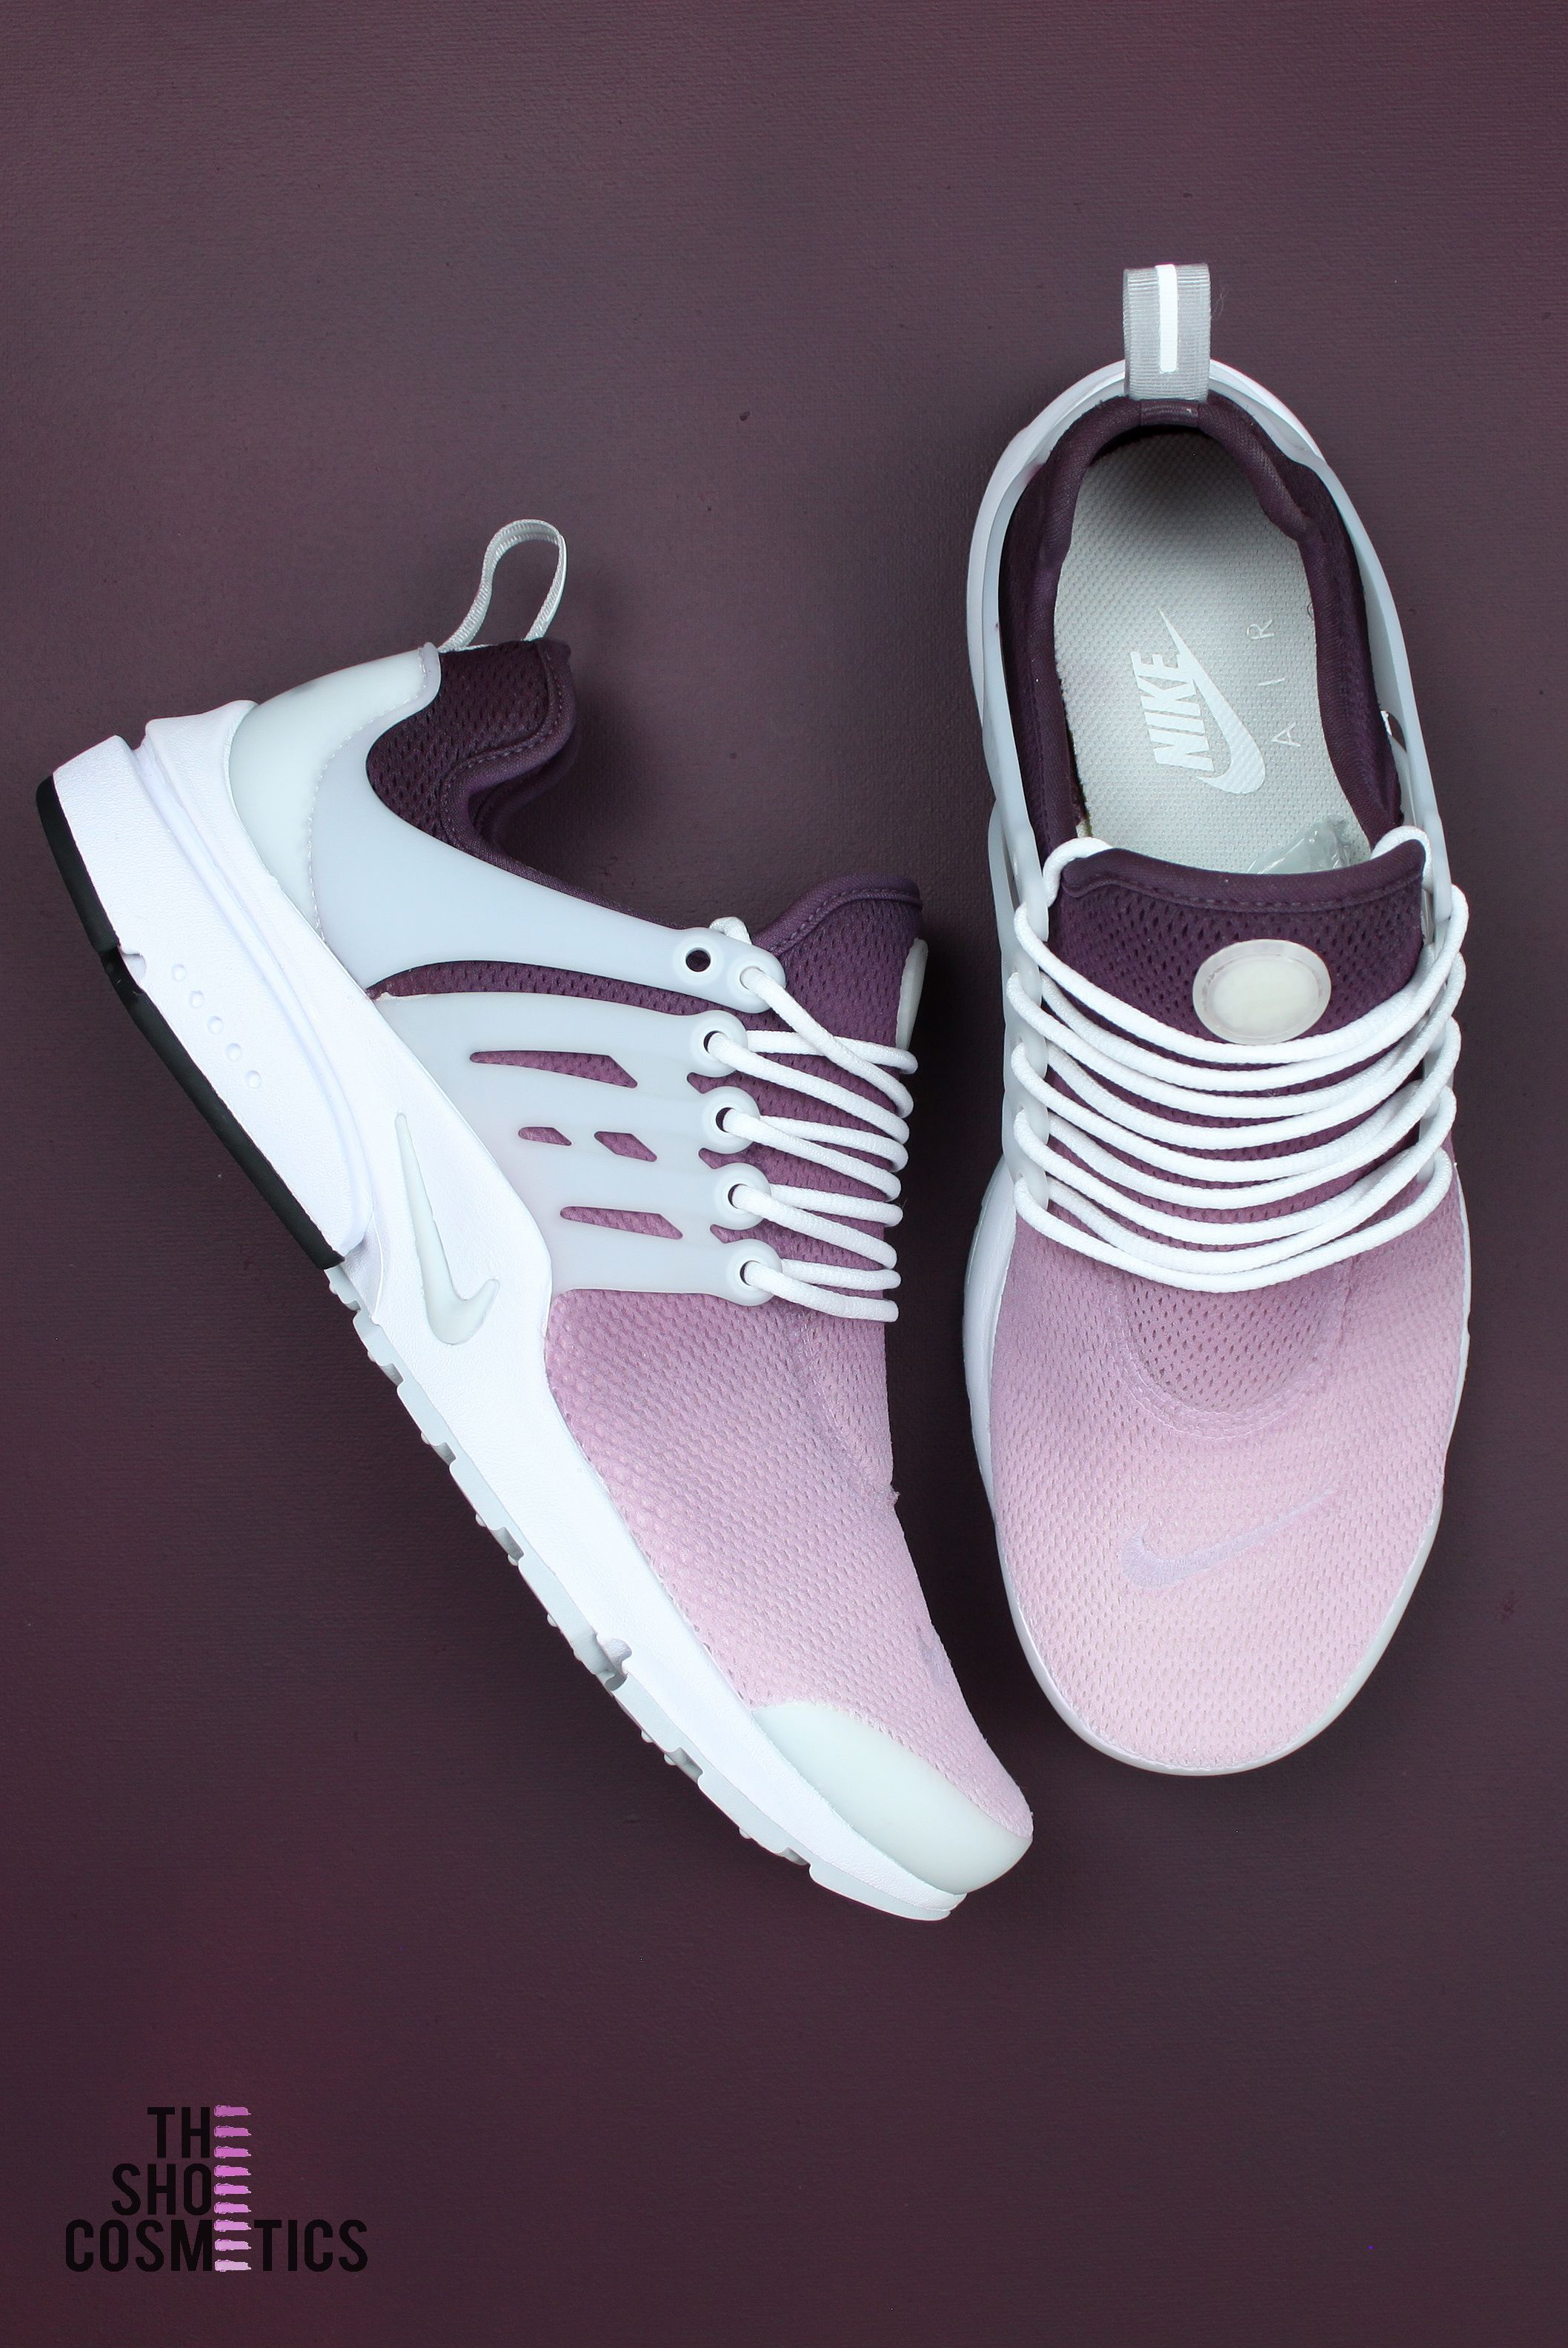 quality design 615ec efa8a Cute women s Custom Nike sneakers. TheShoeCosmetics Maroon ombre girly Nike  Air Presto are a stylish, comfy   fashionable summer trainer perfect for  for ...